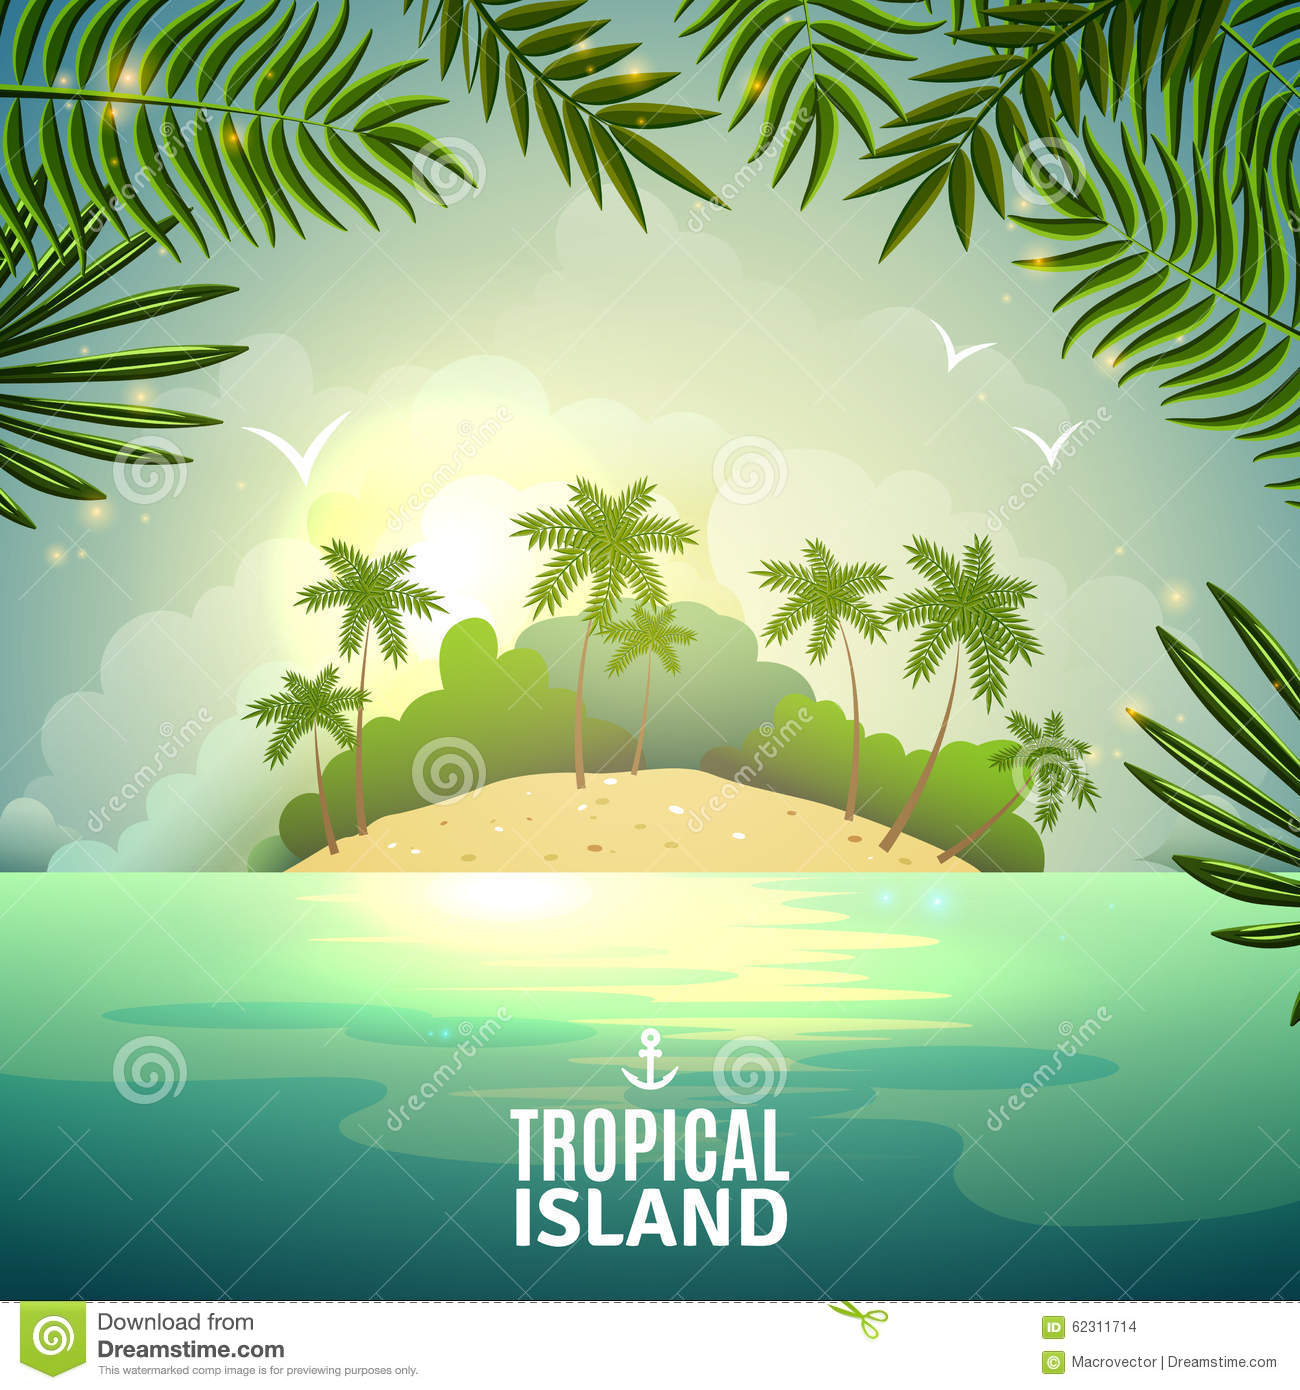 Tropical Island Nature Poster Stock Vector